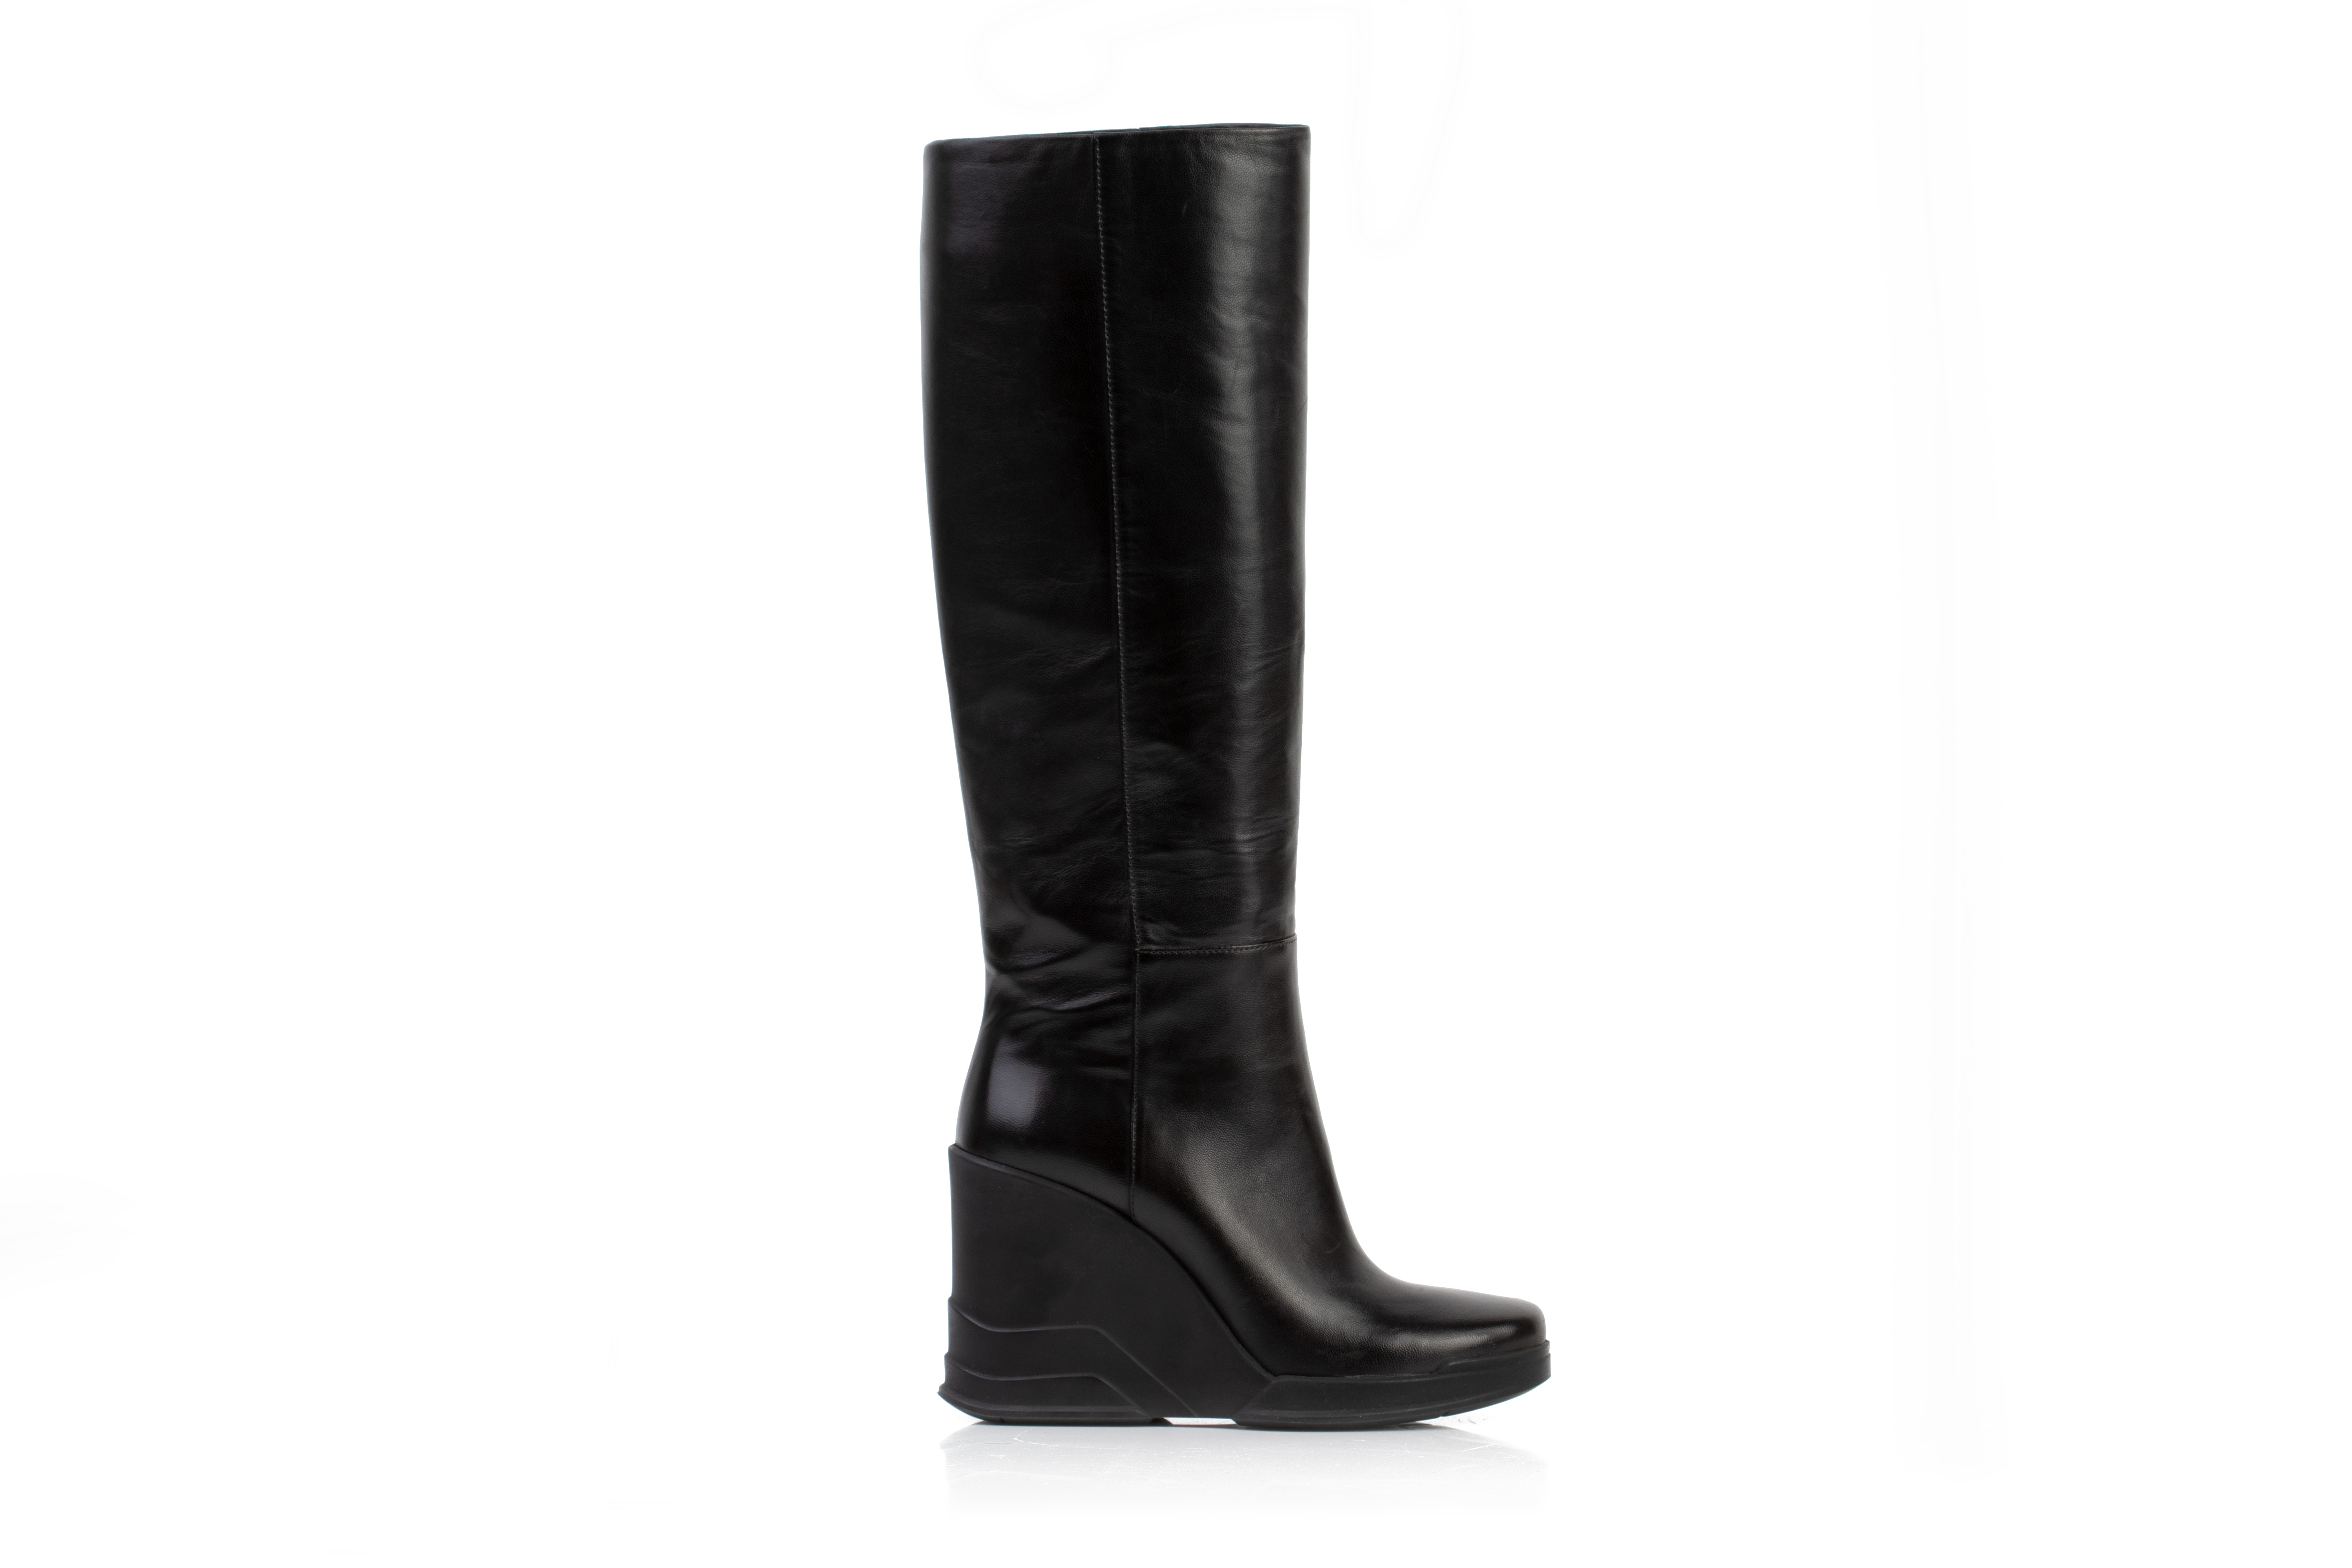 A PAIR OF PRADA BLACK LEATHER WEDGE BOOTS EU36 - Image 2 of 6